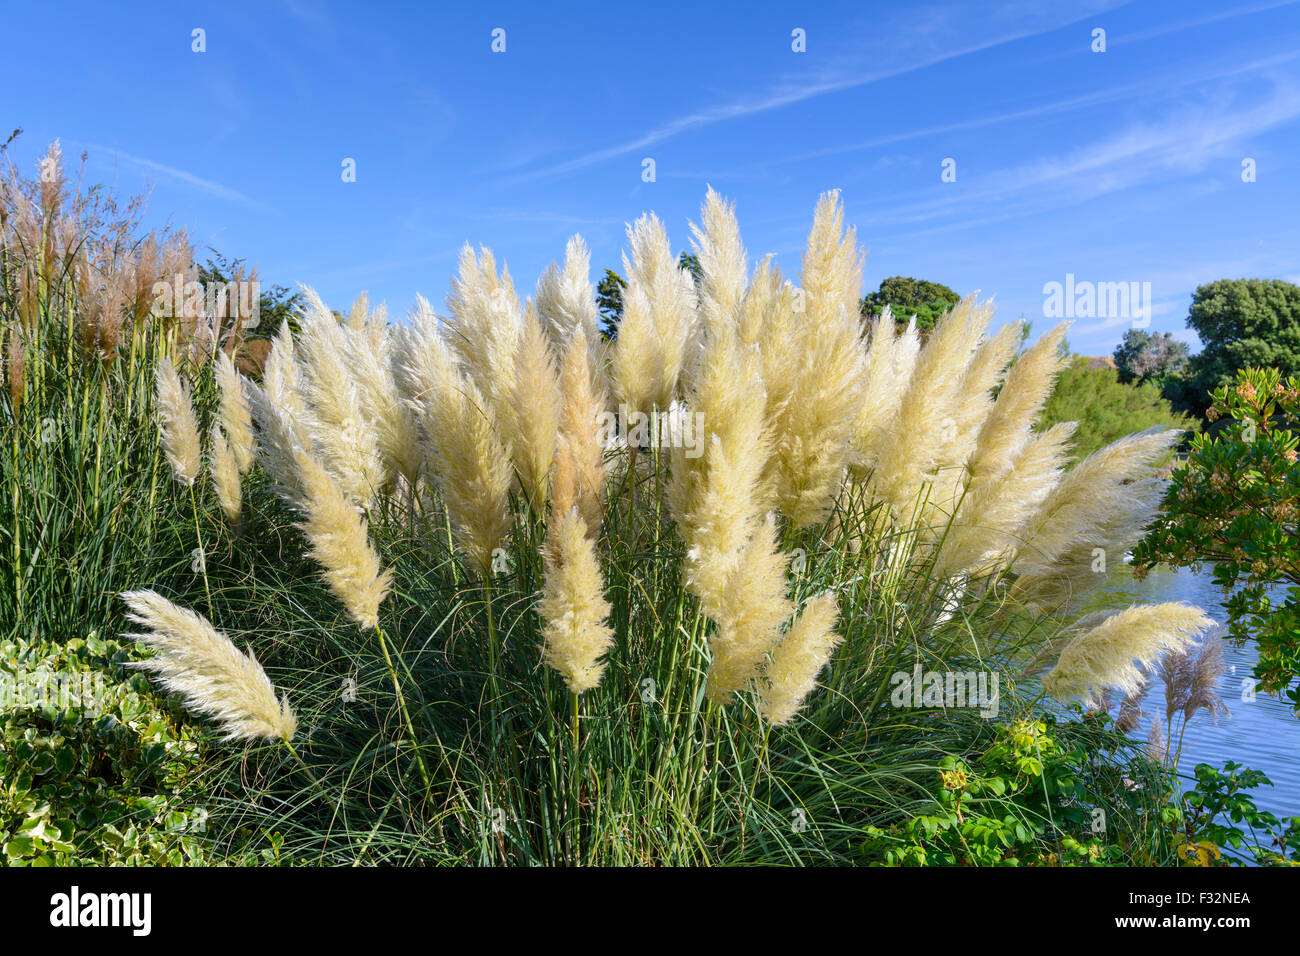 pampas grass stock photos pampas grass stock images alamy. Black Bedroom Furniture Sets. Home Design Ideas